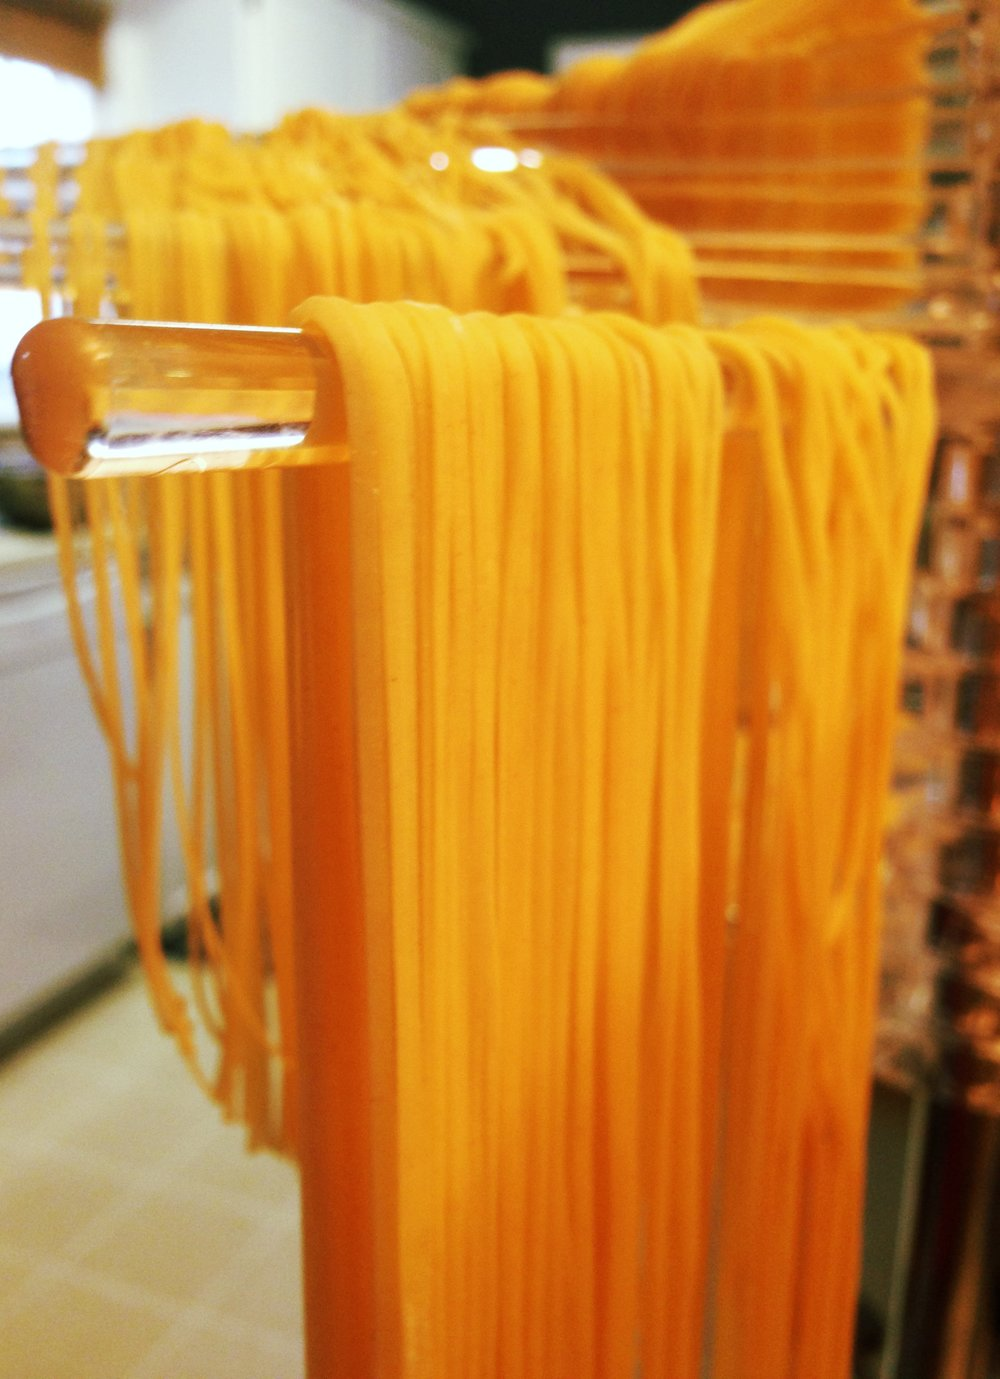 Homemade pasta noodles chilling out.